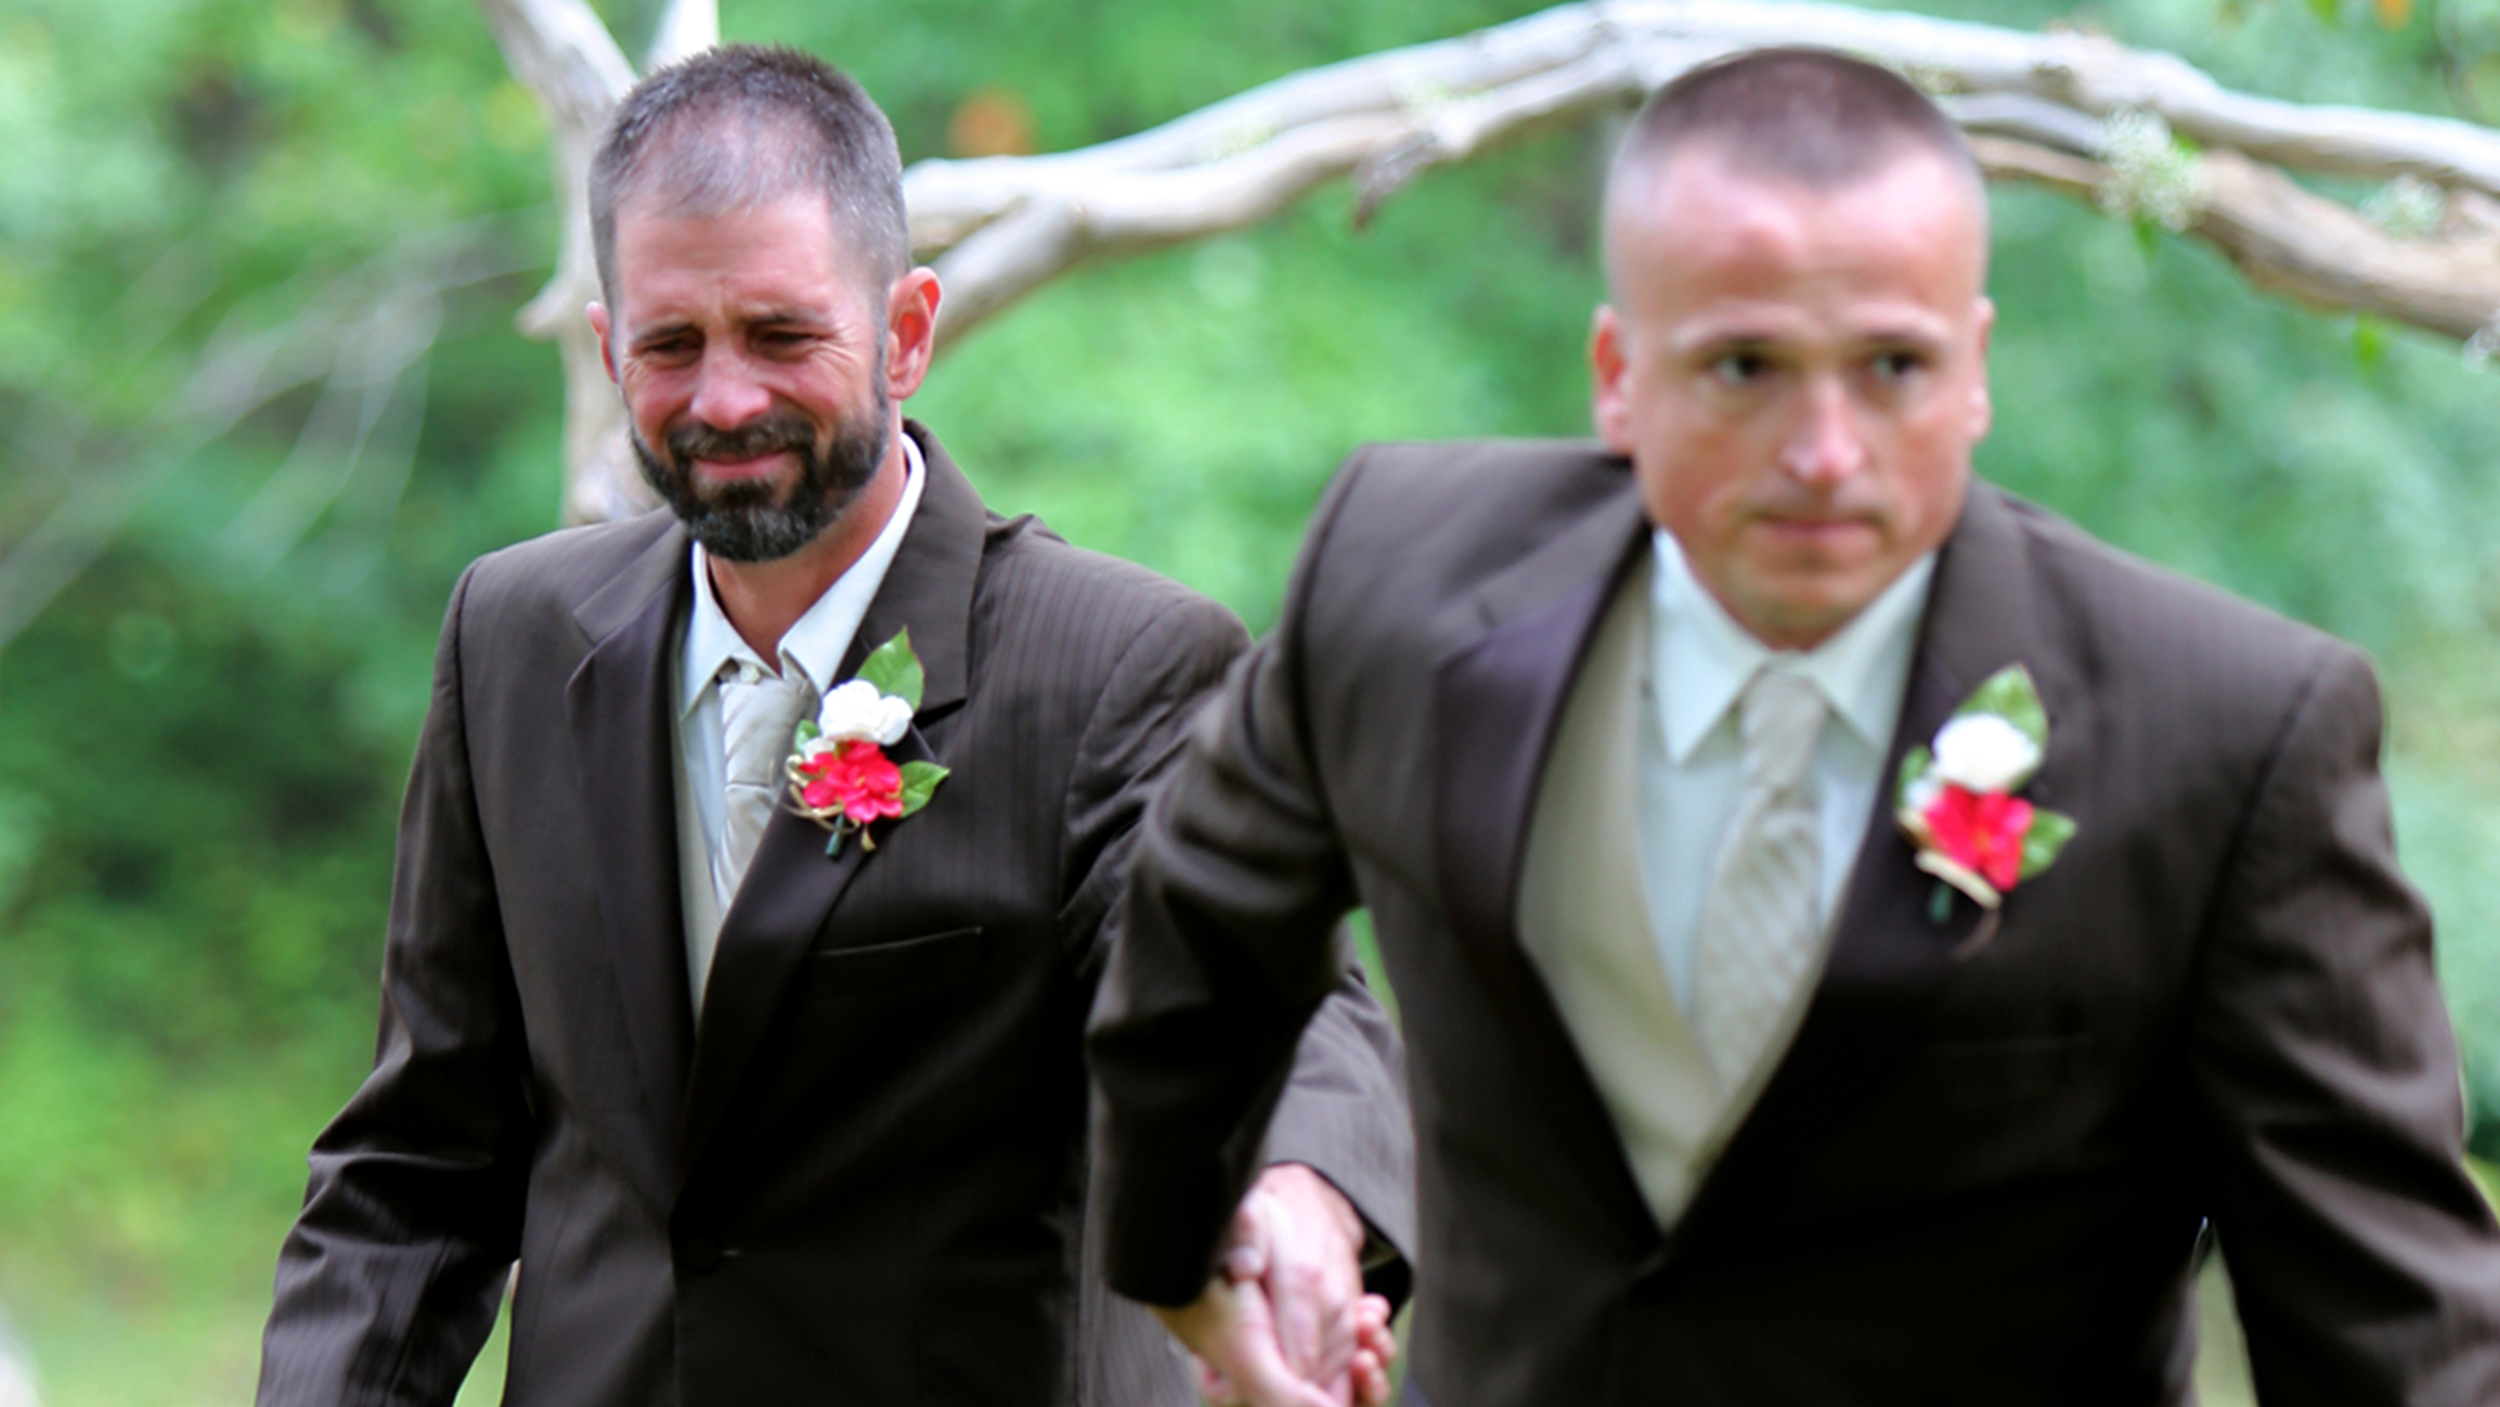 Dad Surprises Stepdad At Daughter S Wedding With Both Walking Bride Down Aisle